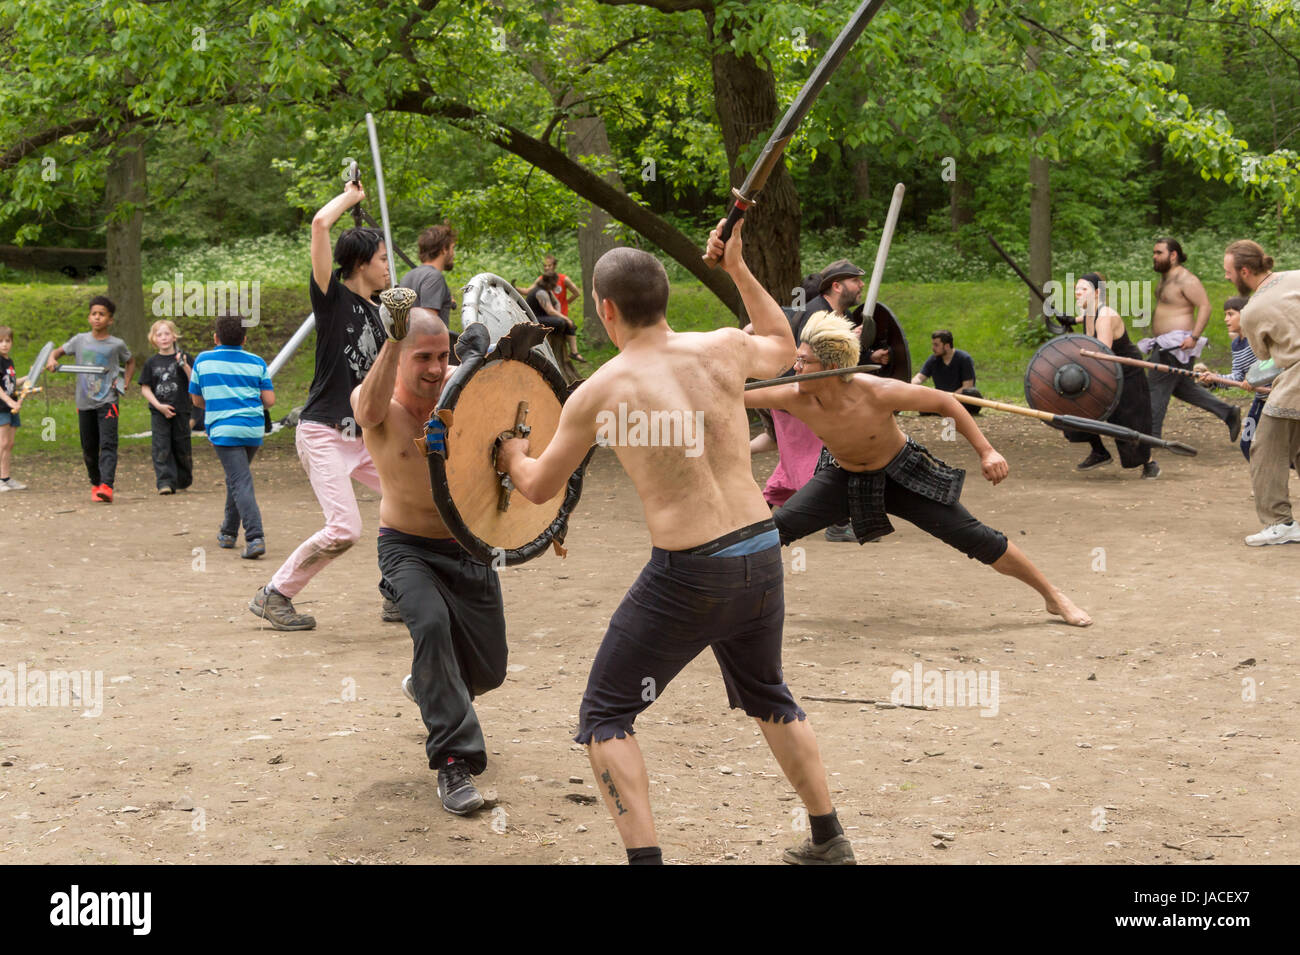 Montreal, CA - 4 June 2017: 'Guerriers de la montagne' in Montreal. Medieval battles in Mont-Royal Park - Stock Image